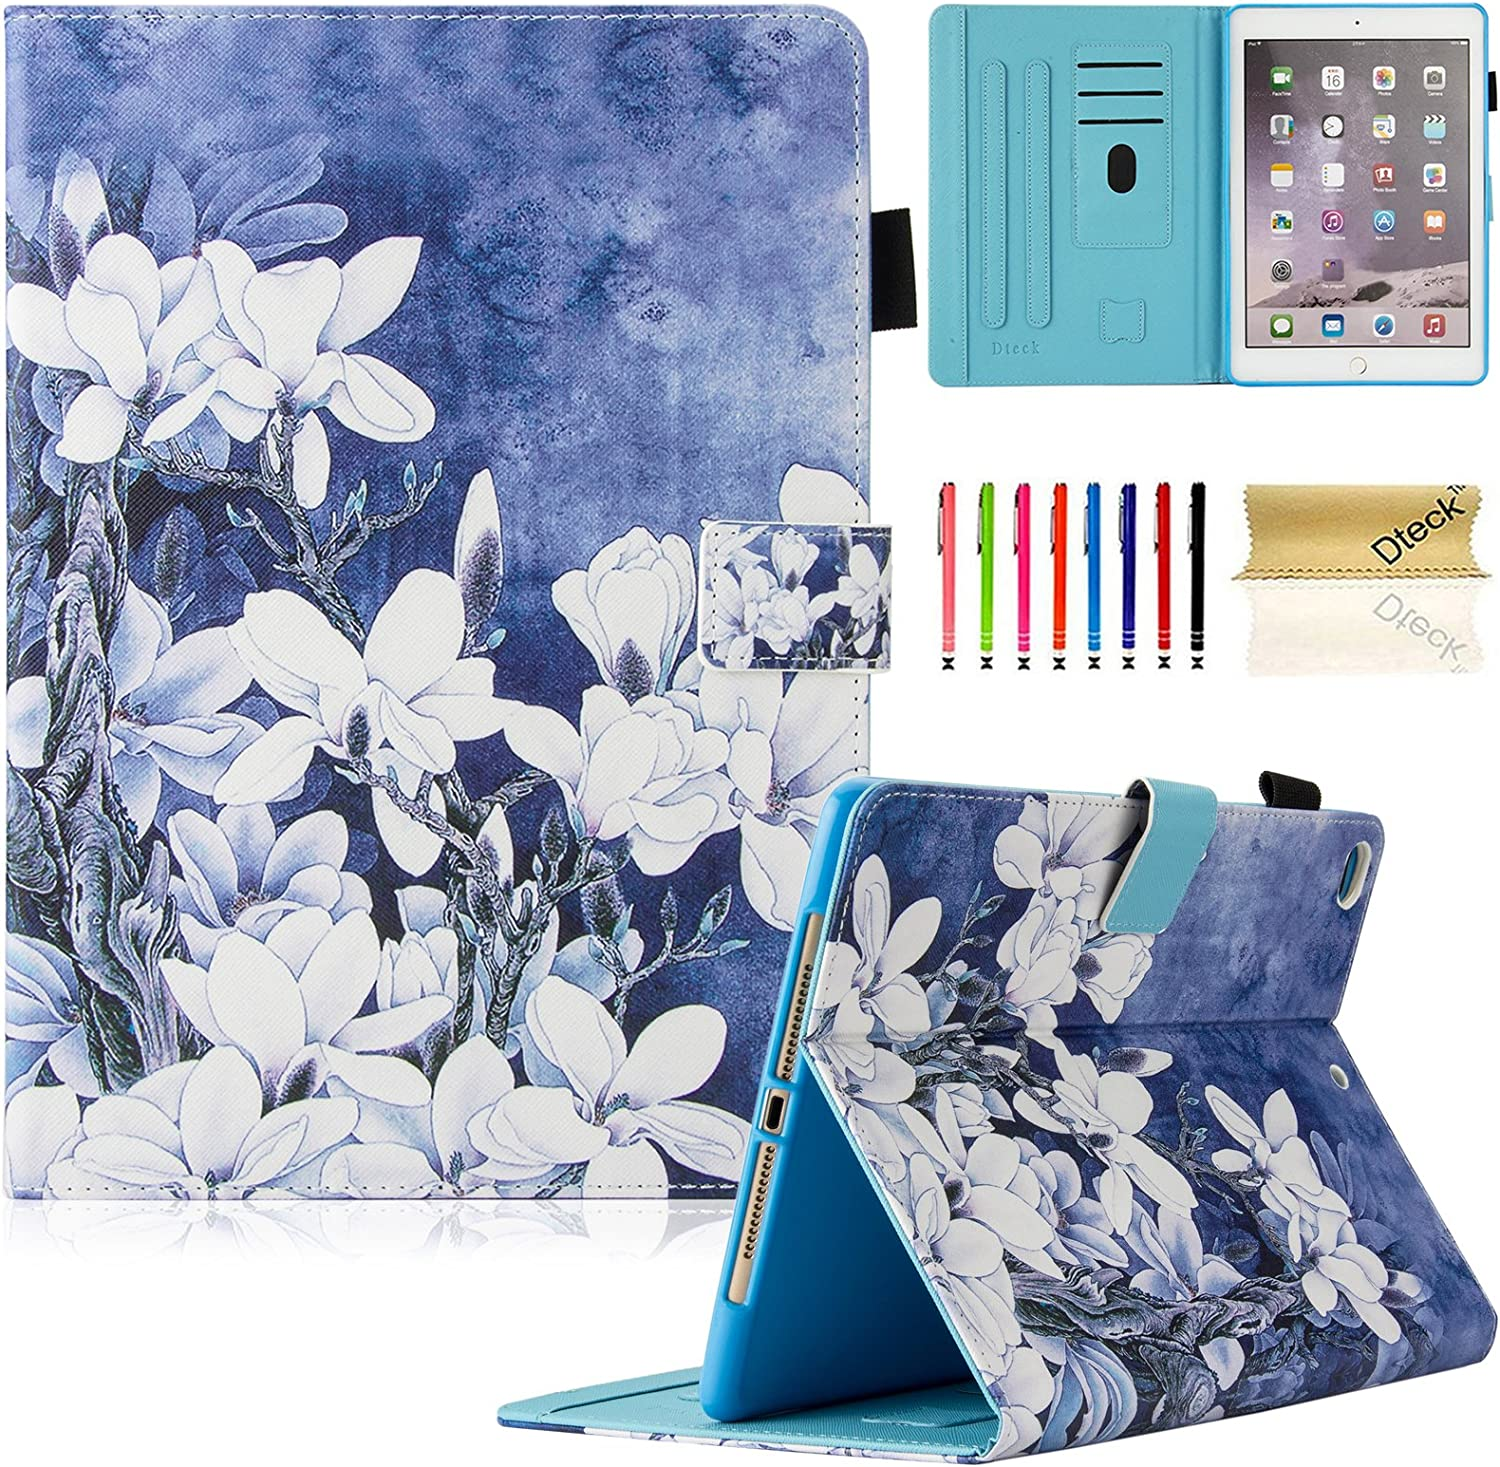 Dteck iPad 9.7 inch 2017 2018 Case/iPad Air Case/iPad Air 2 Case - Multi-Angle Viewing Auto Wake/Sleep Folio Smart Cover Stand Wallet Case for iPad 2017/2018 iPad 9.7 Inch,iPad Air 1 2,White Flower